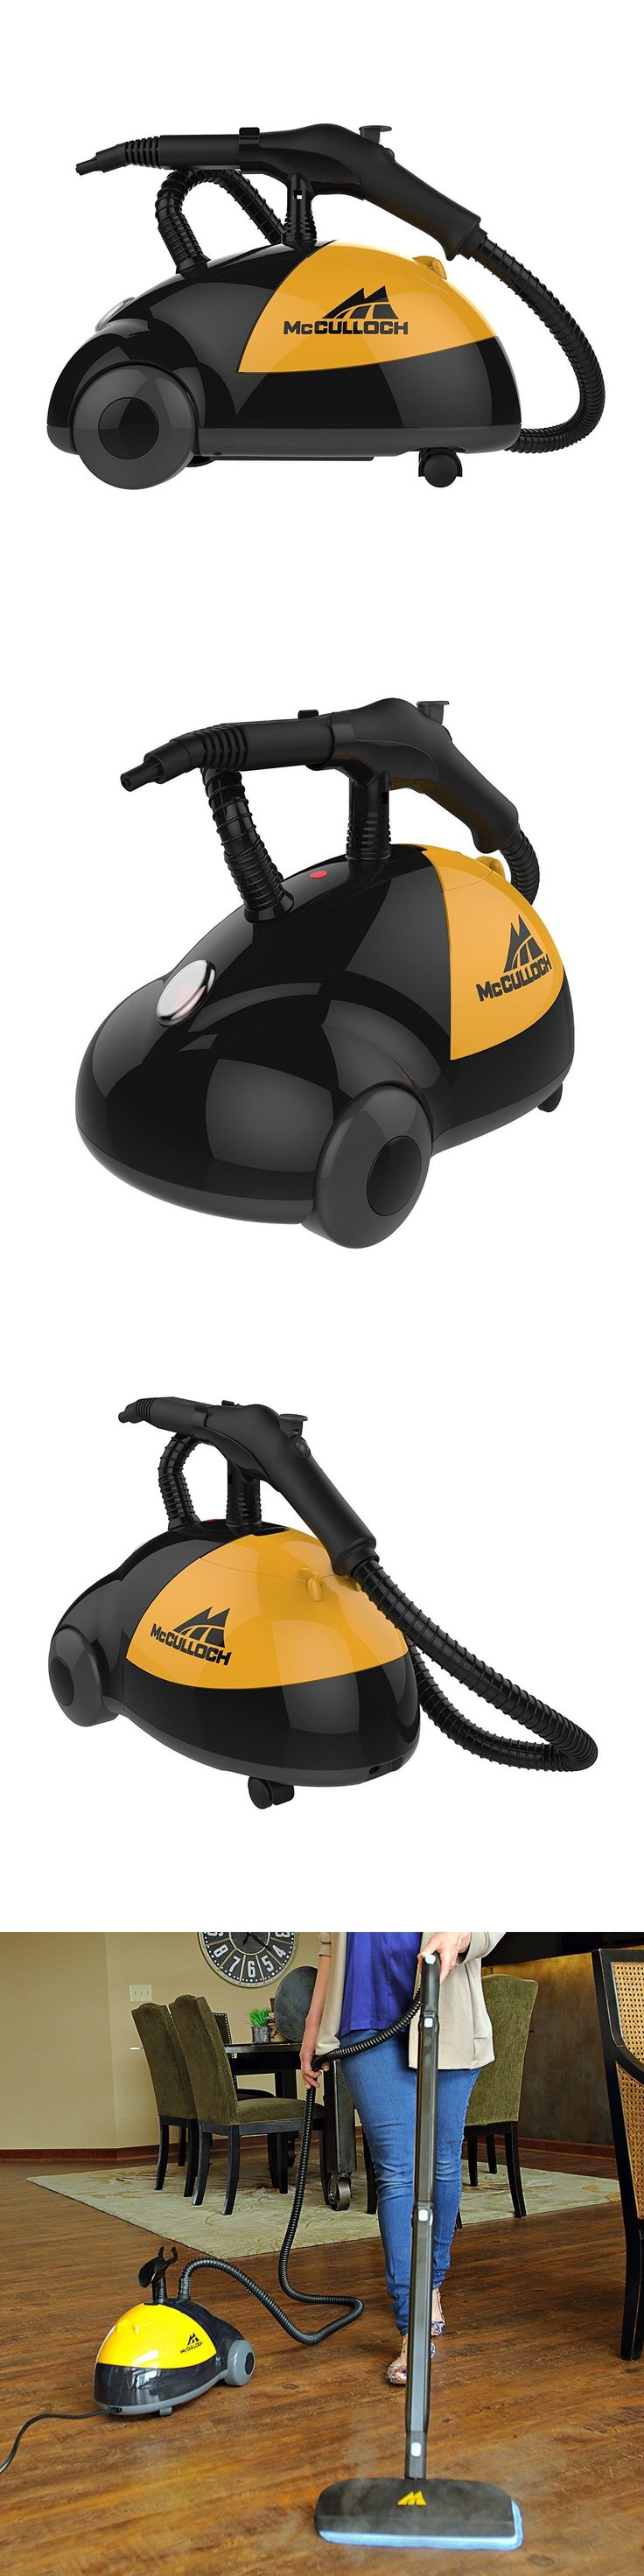 Carpet Steamers 79656: Steam Heavy Duty Cleaner Carpet Floor Portable Cleaning Steamer Canister System -> BUY IT NOW ONLY: $186.99 on eBay!